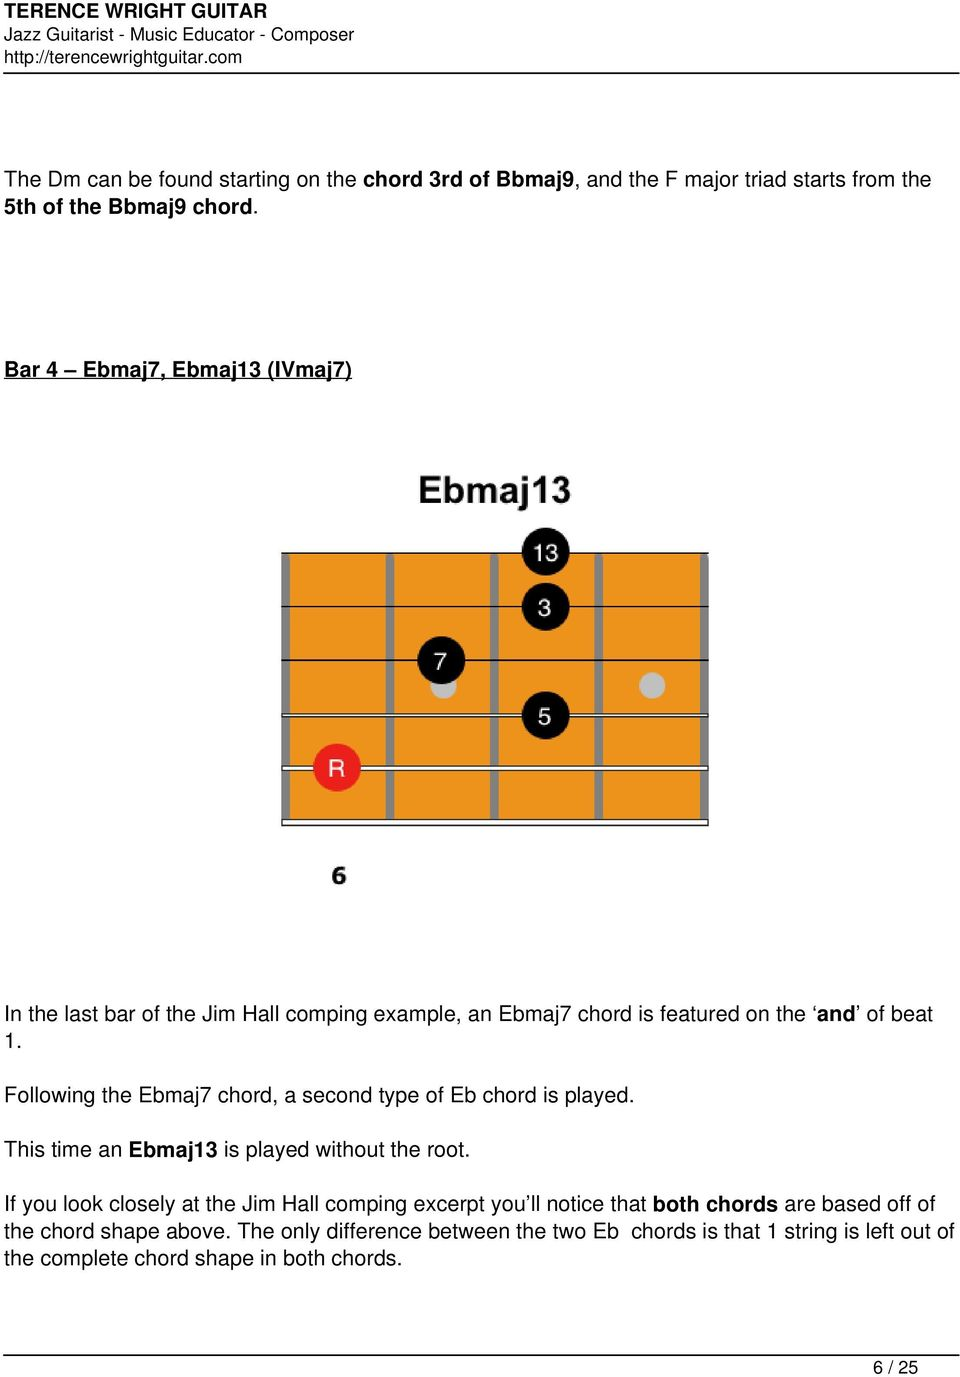 Jim Hall Chords And Comping Techniques Pdf